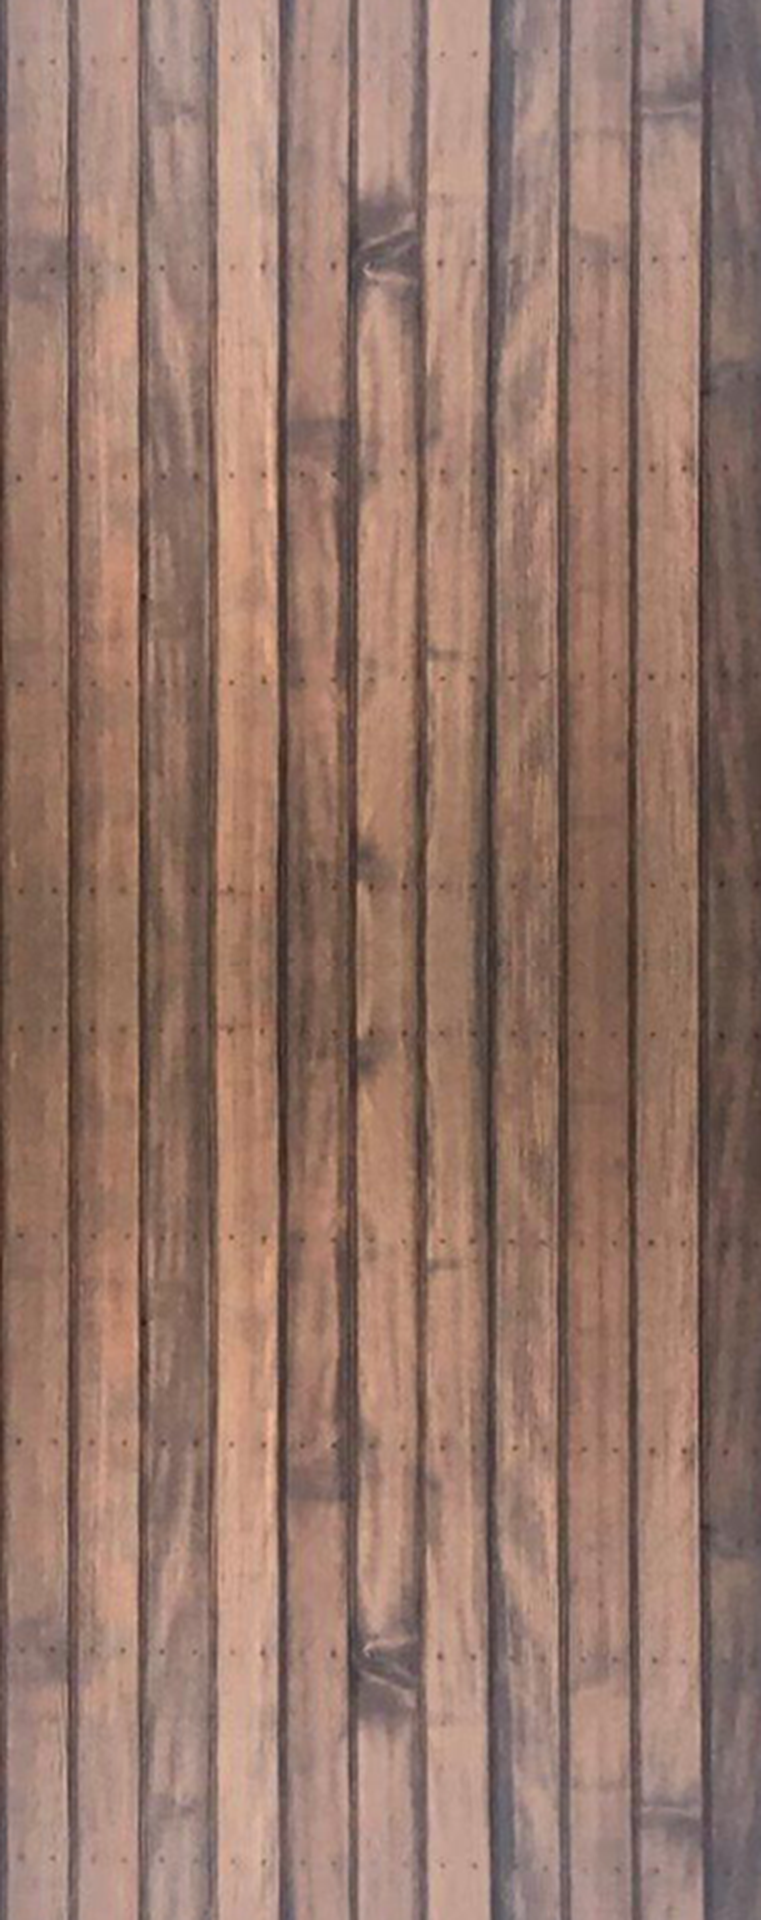 vERTICAL BARN SIDING WITH RELIEF